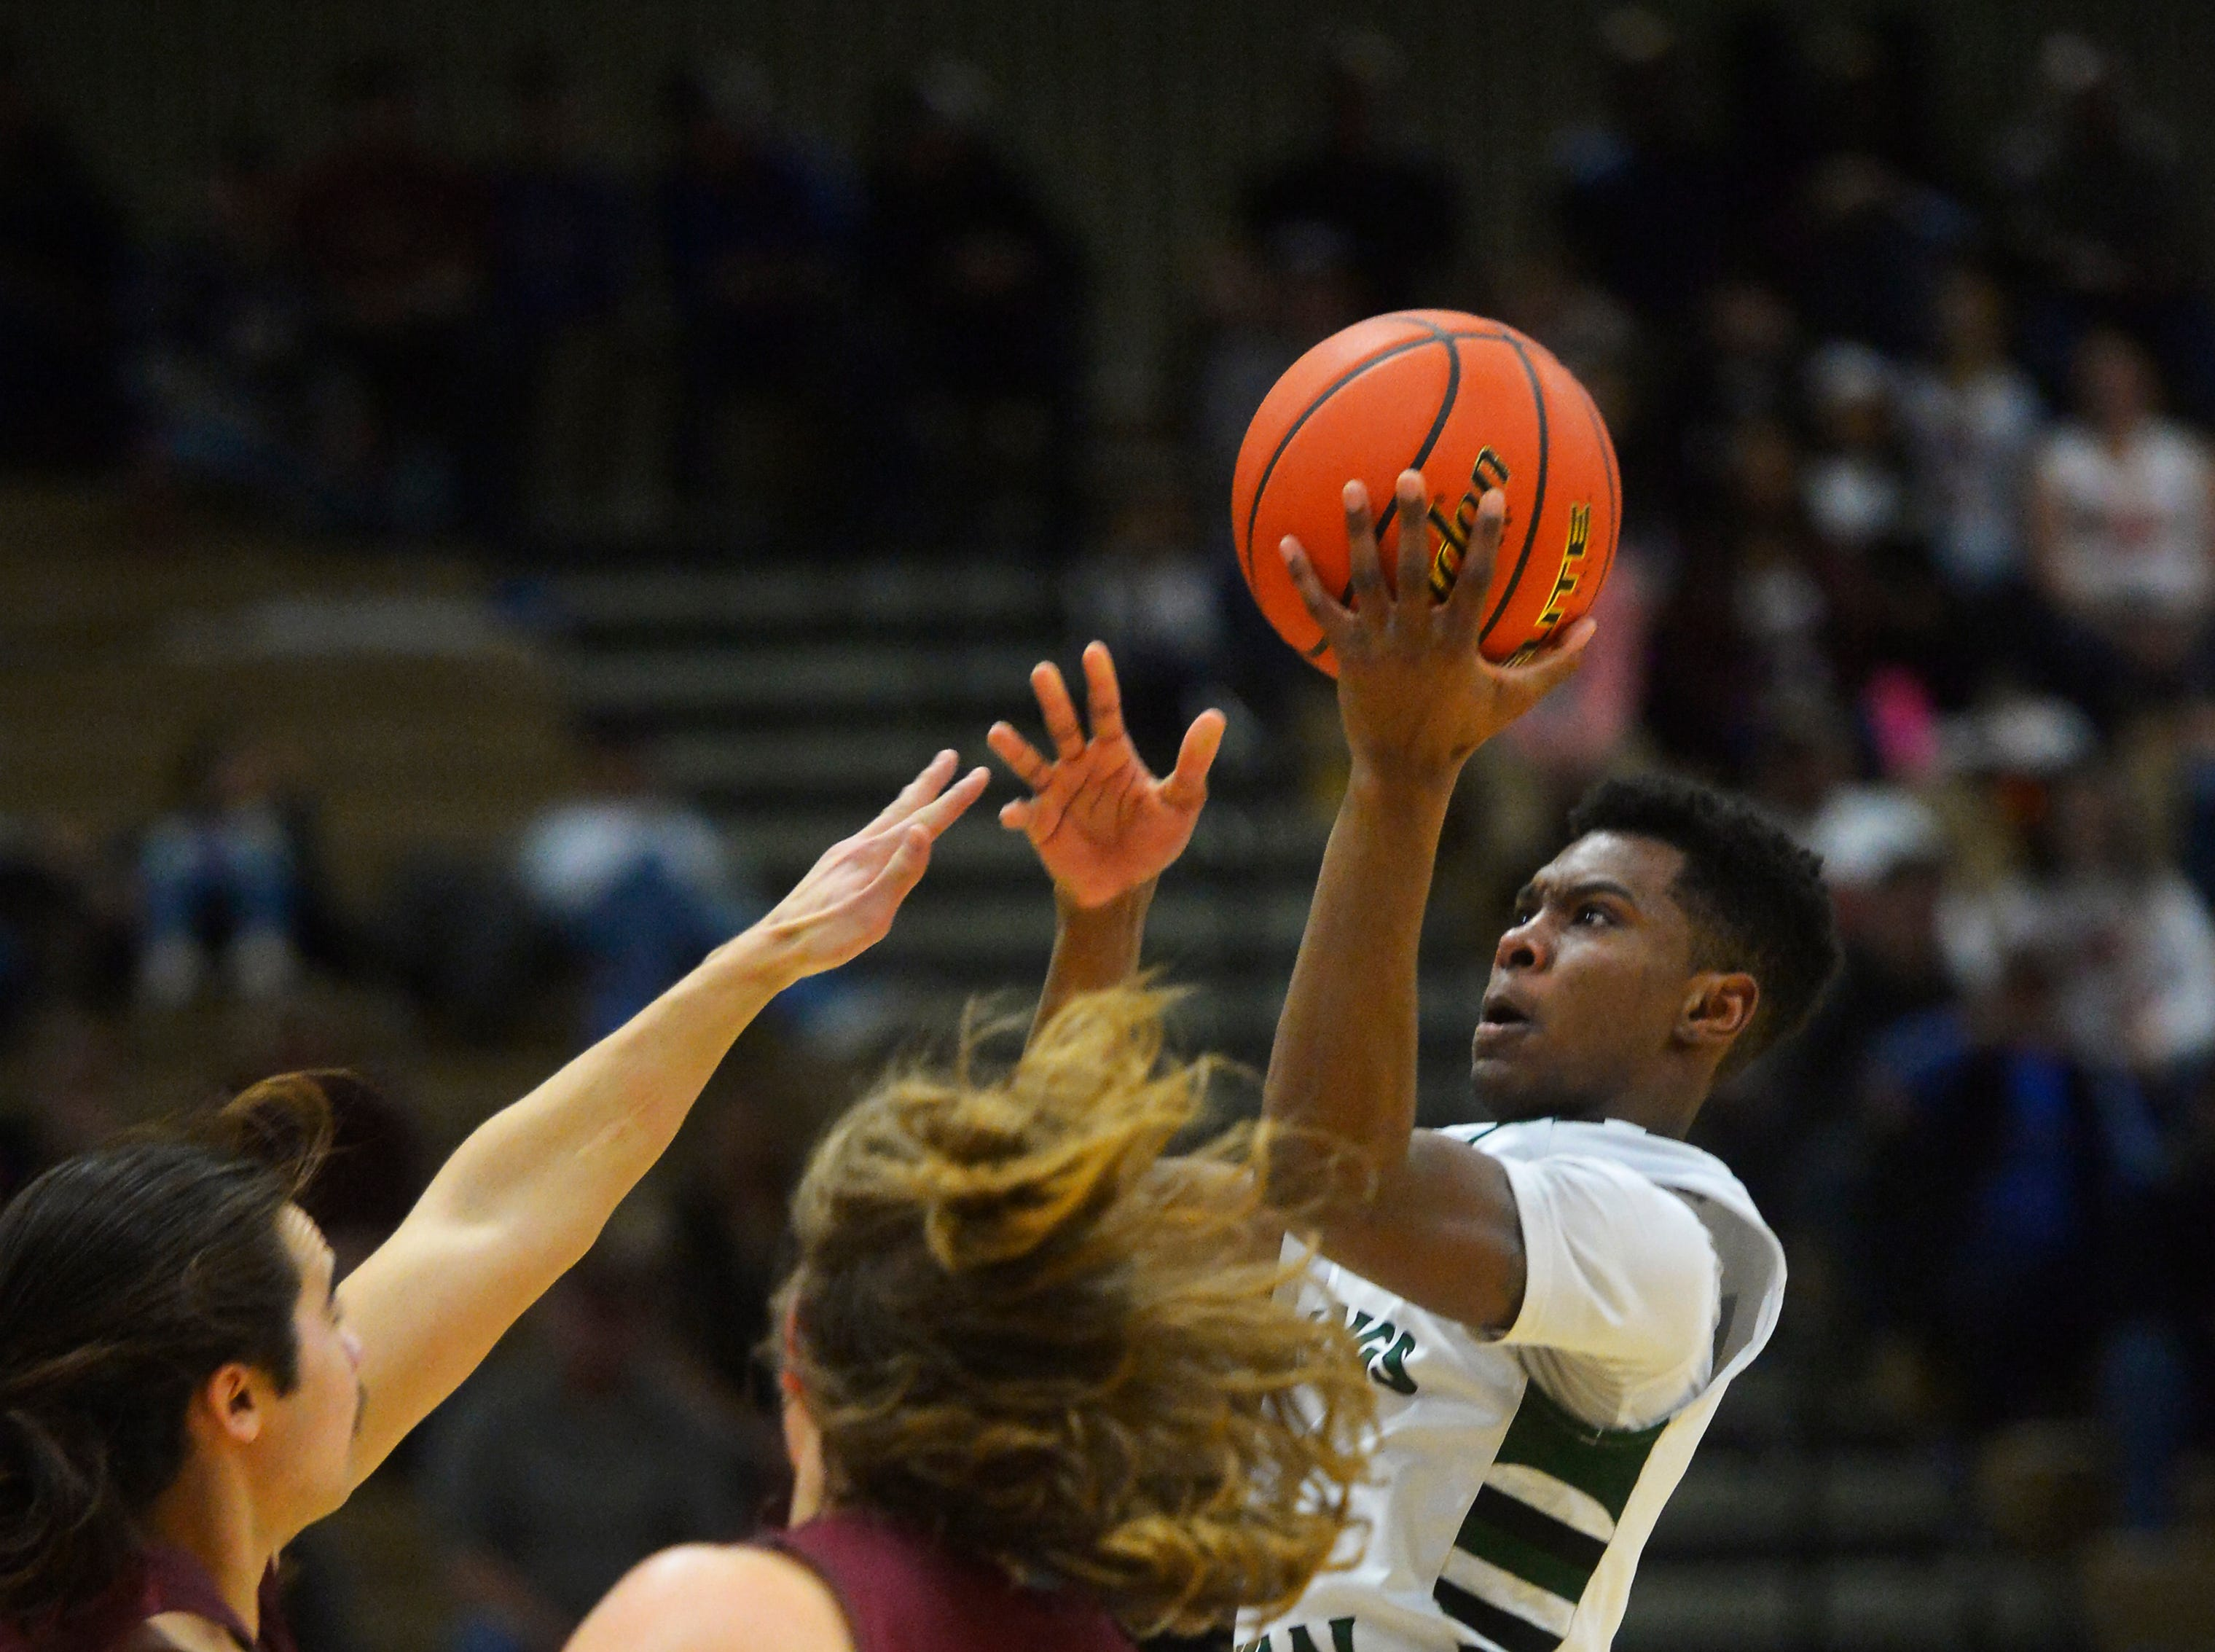 The Billings Central and Hamilton boys play in the semifinal game of the State Class A Basketball Tournament in the Four Seasons Arena, Friday.